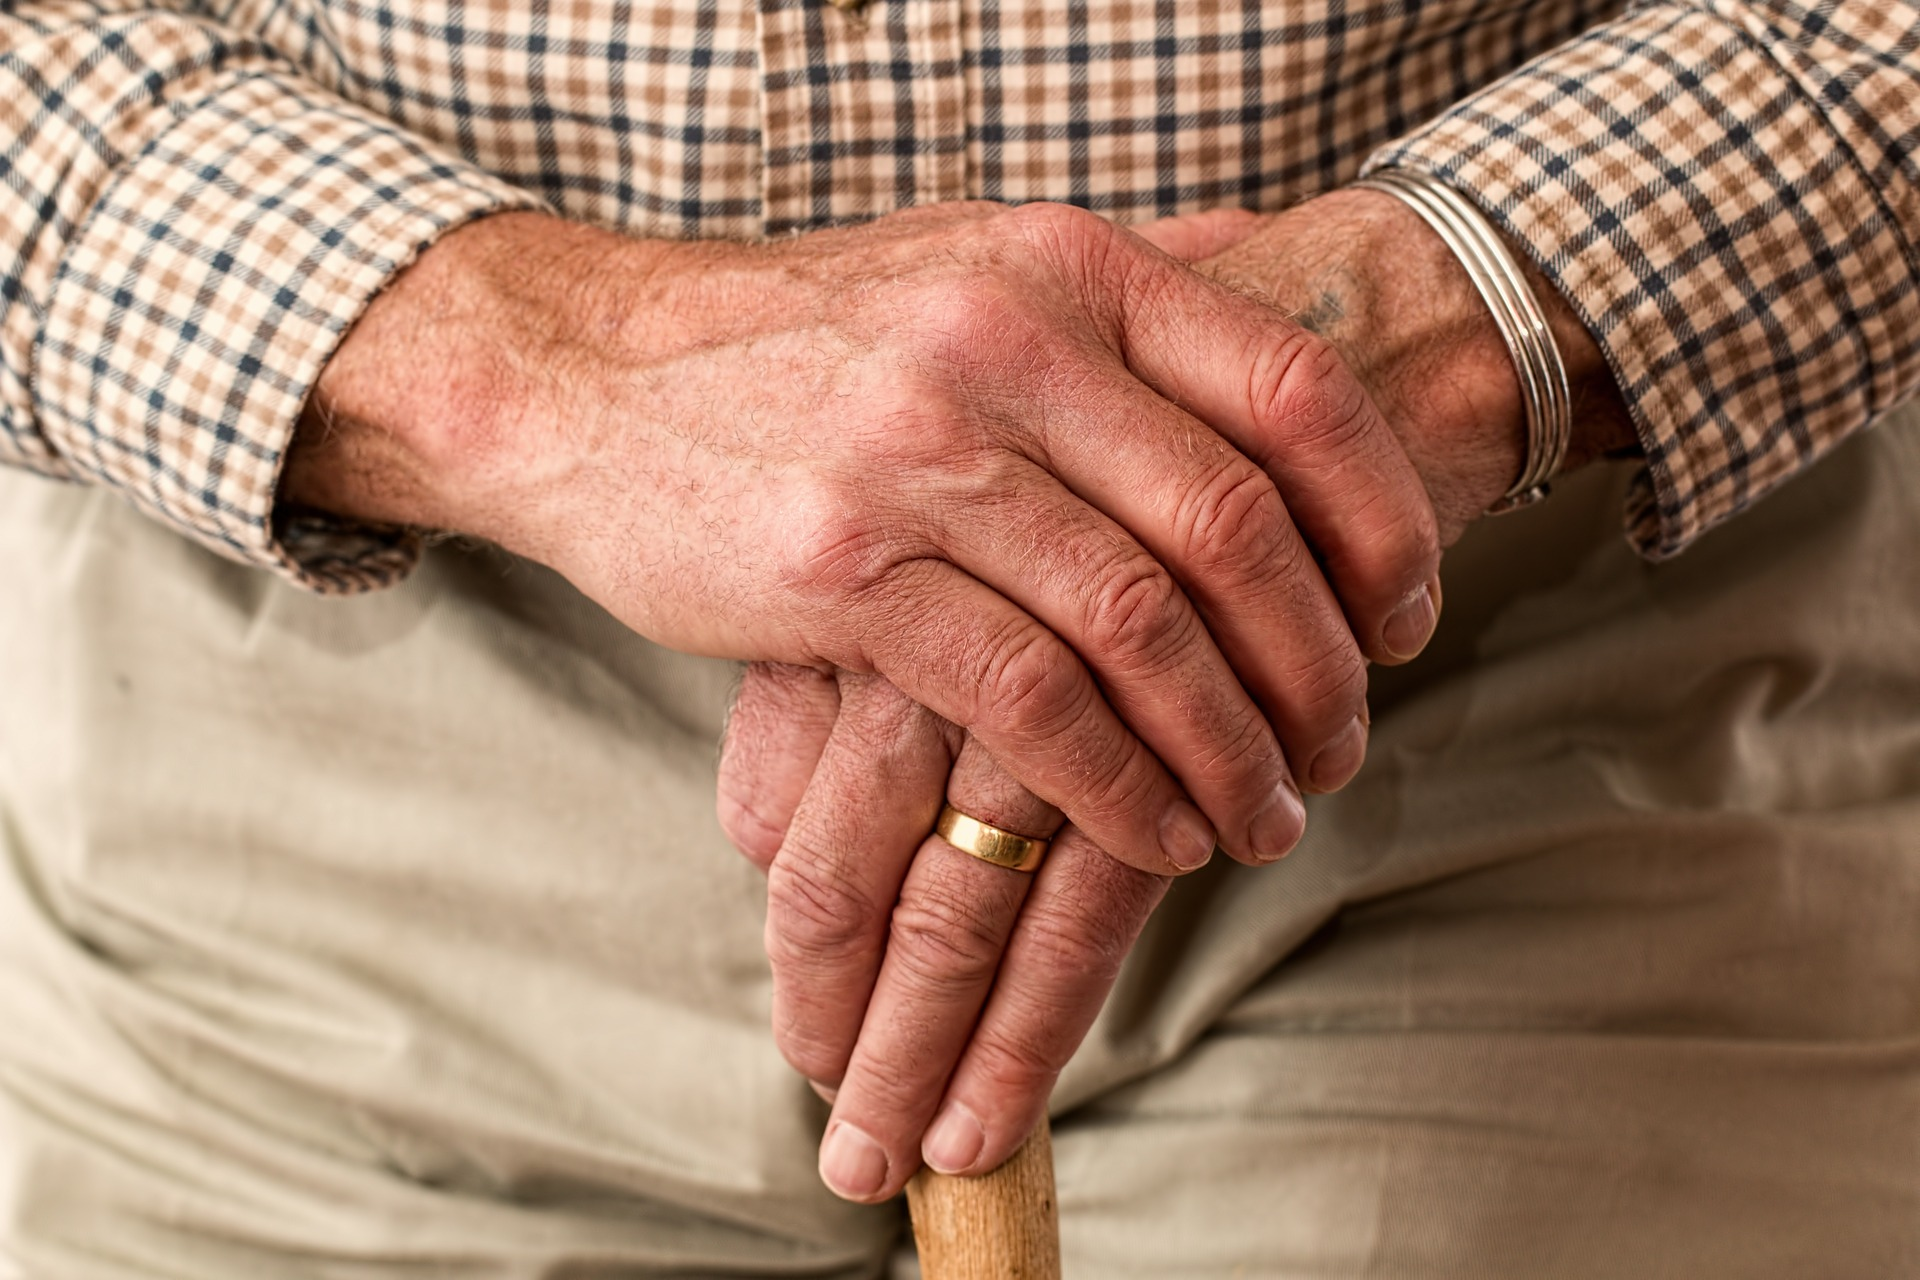 2021: Amplifying the Voice of Aging Workers and Retirees